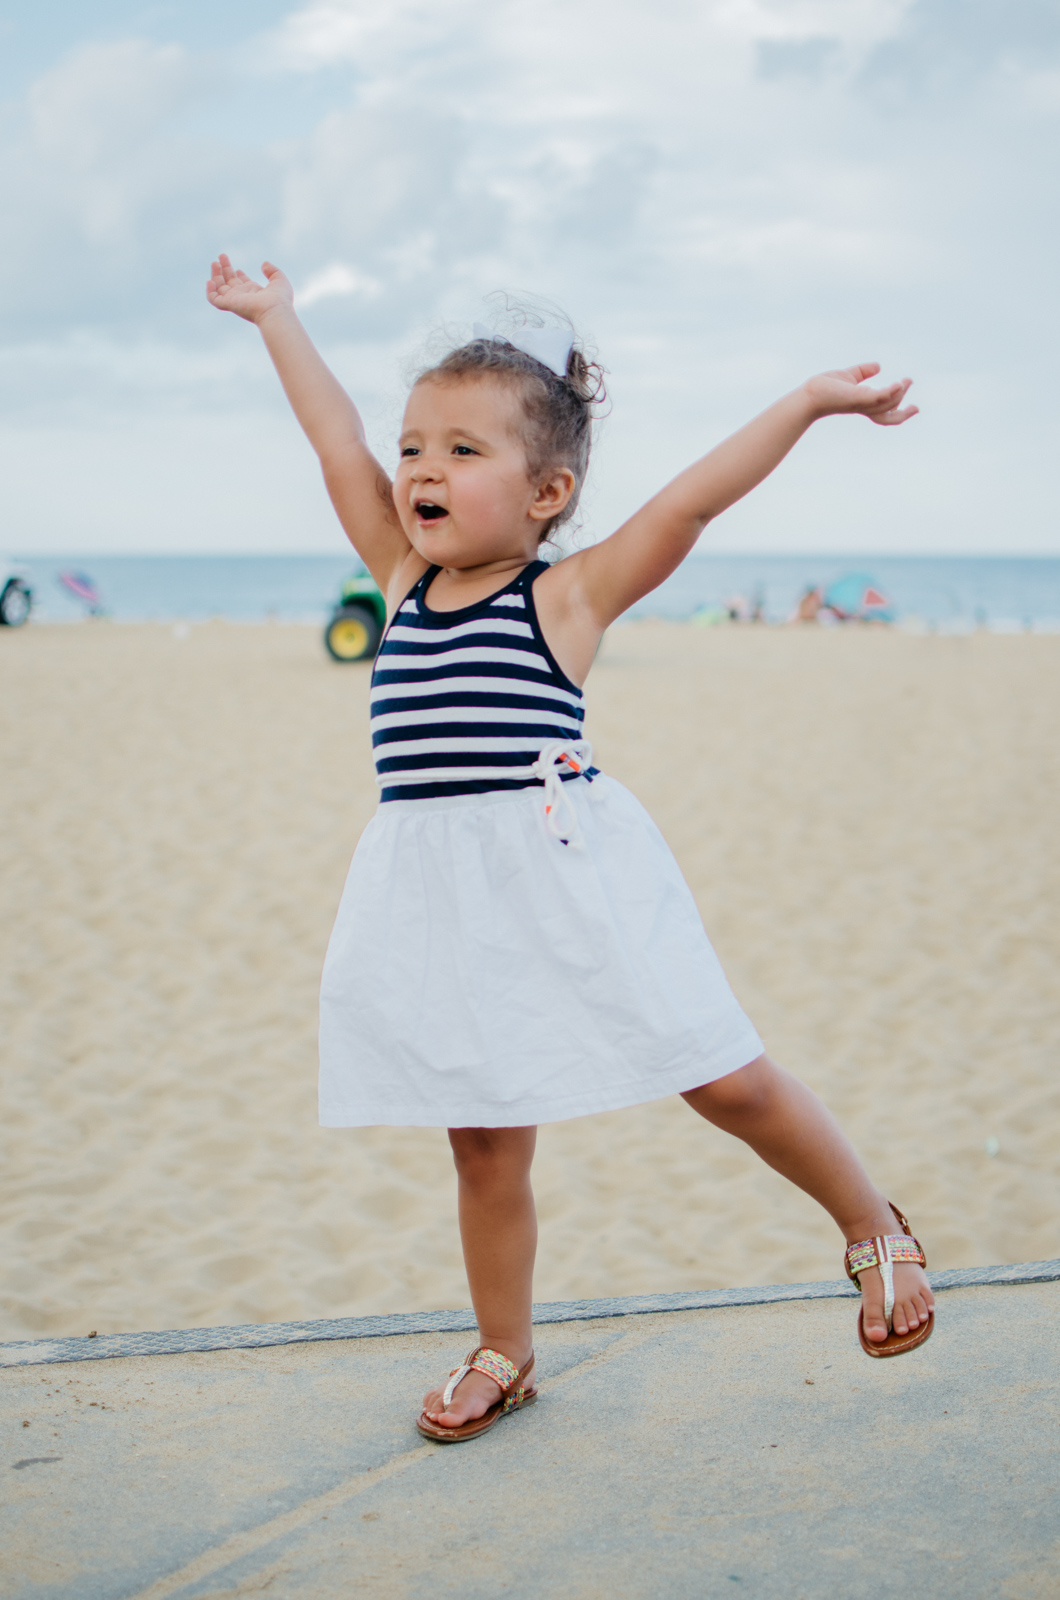 things toddlers say - funny sayings from my toddler daughter   bylaurenm.com